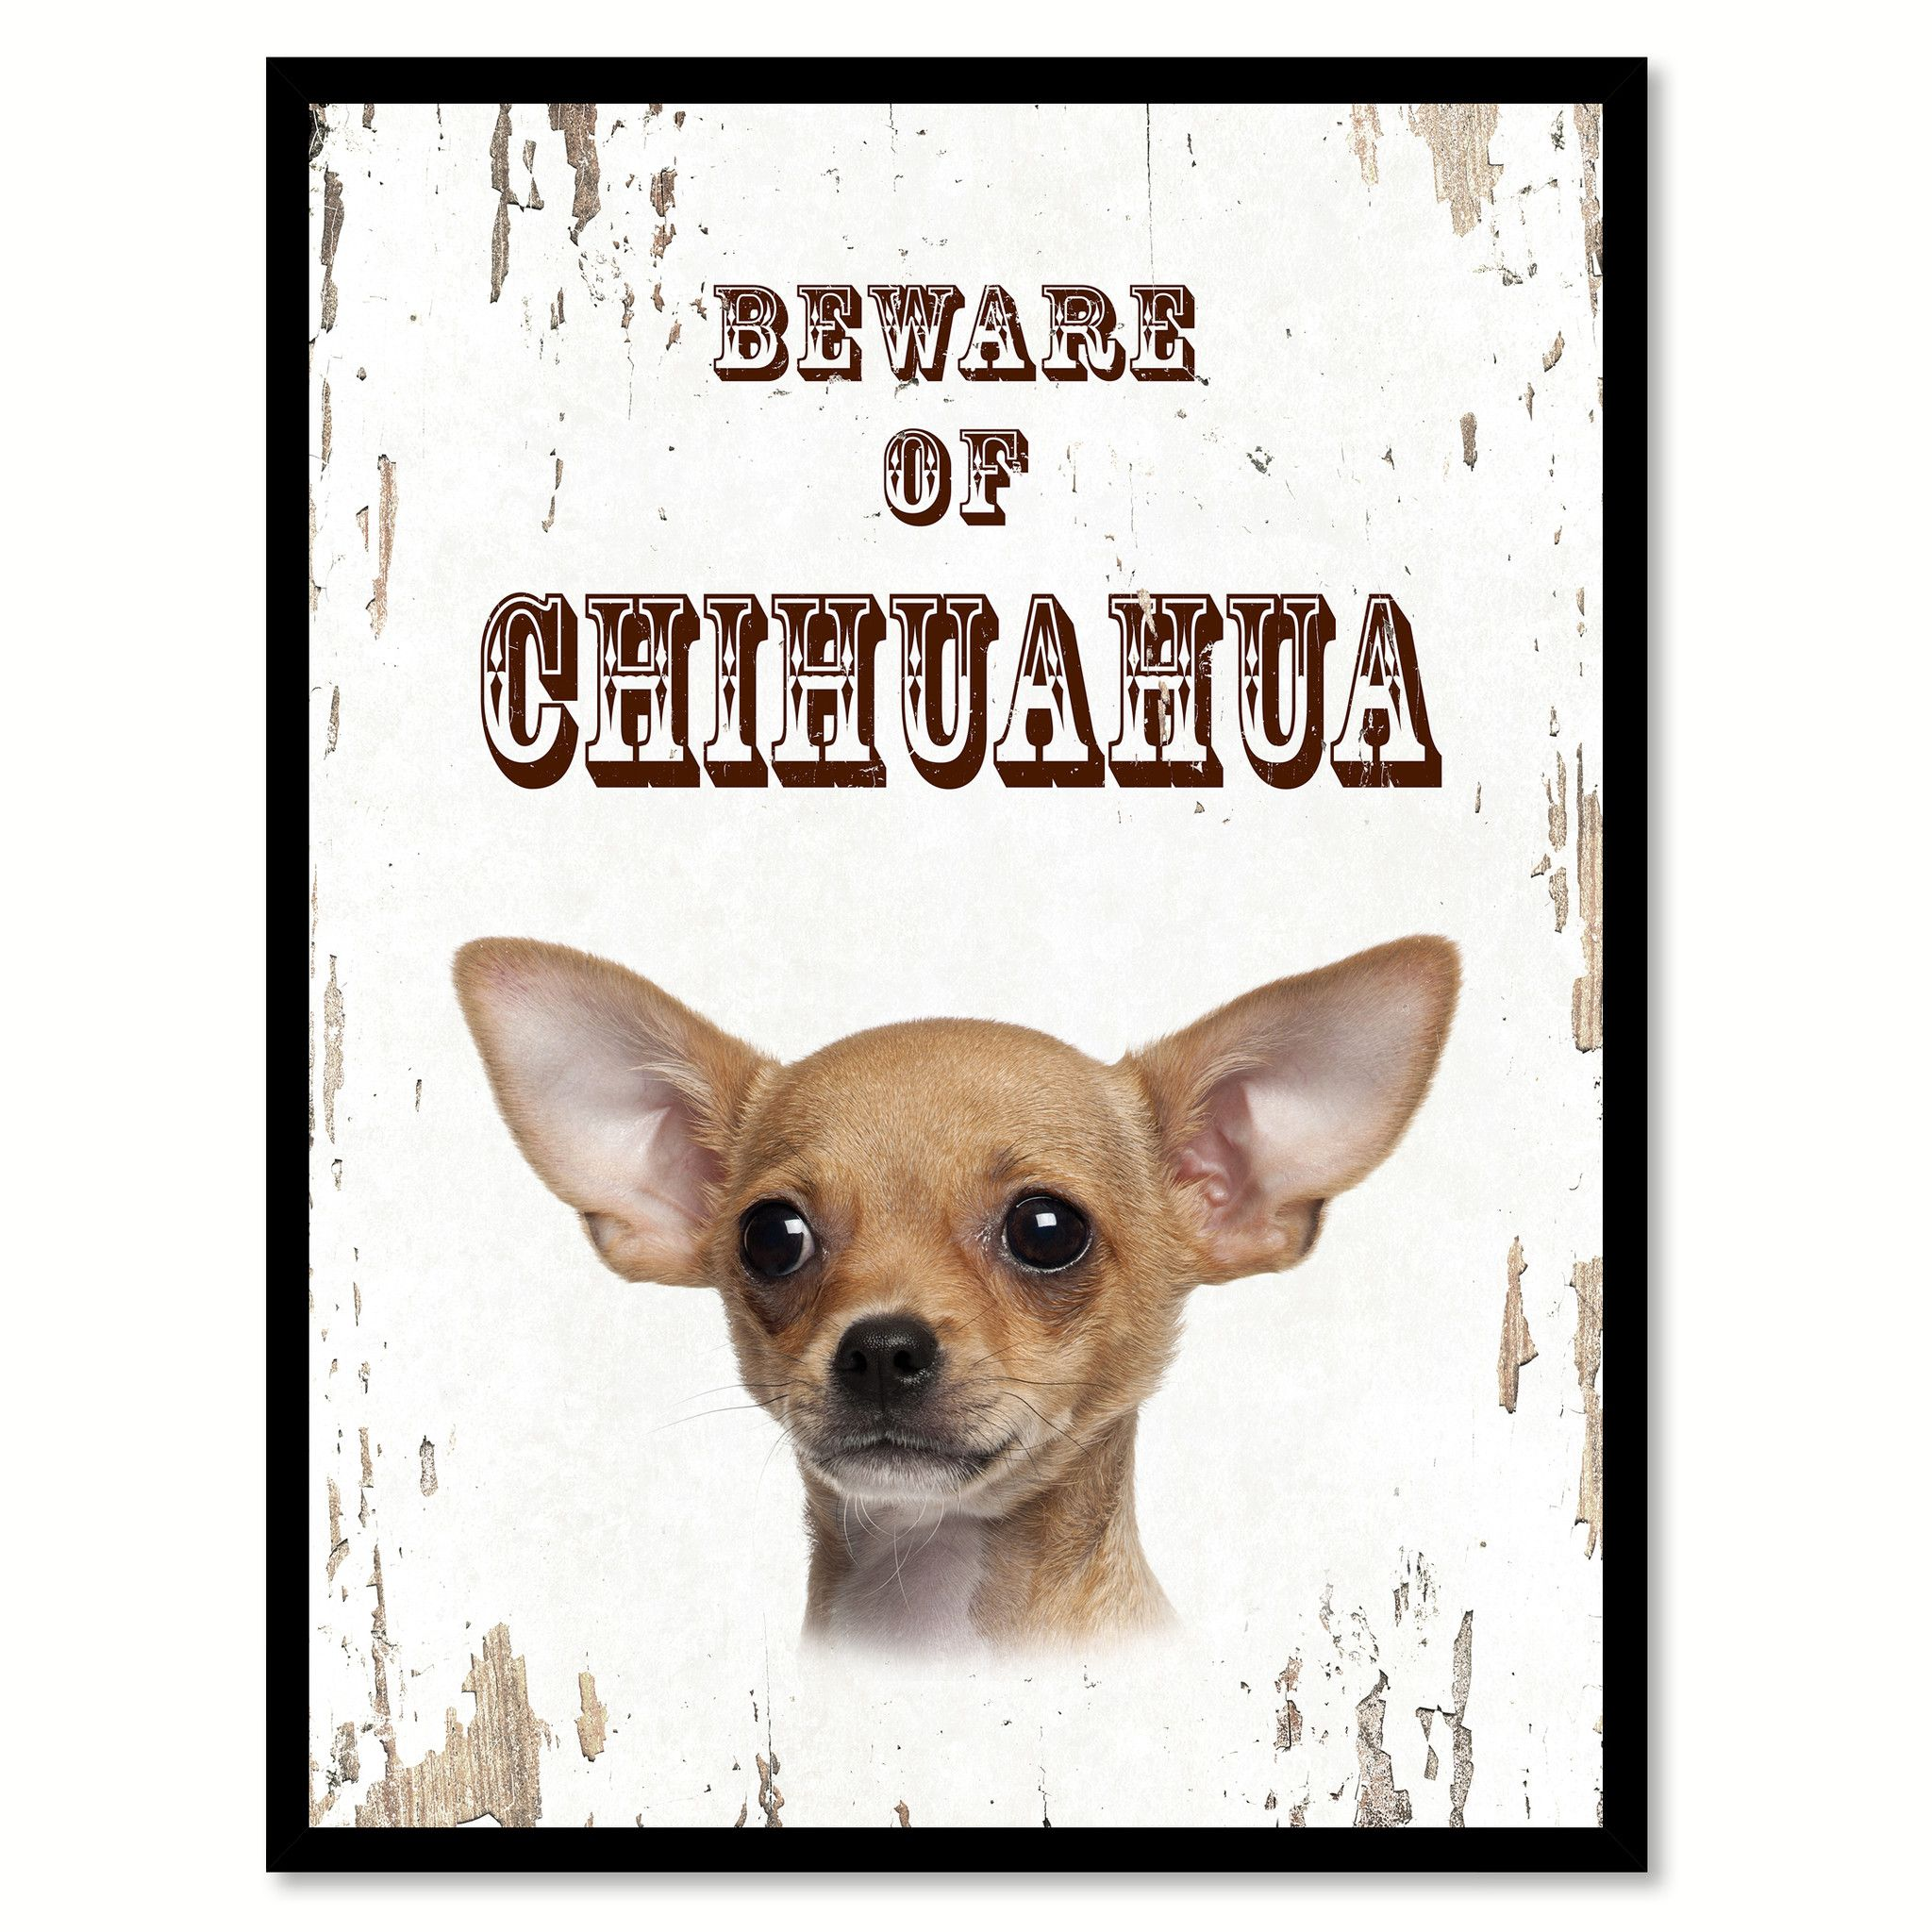 Chihuahua Dog Sign Gifts Canvas